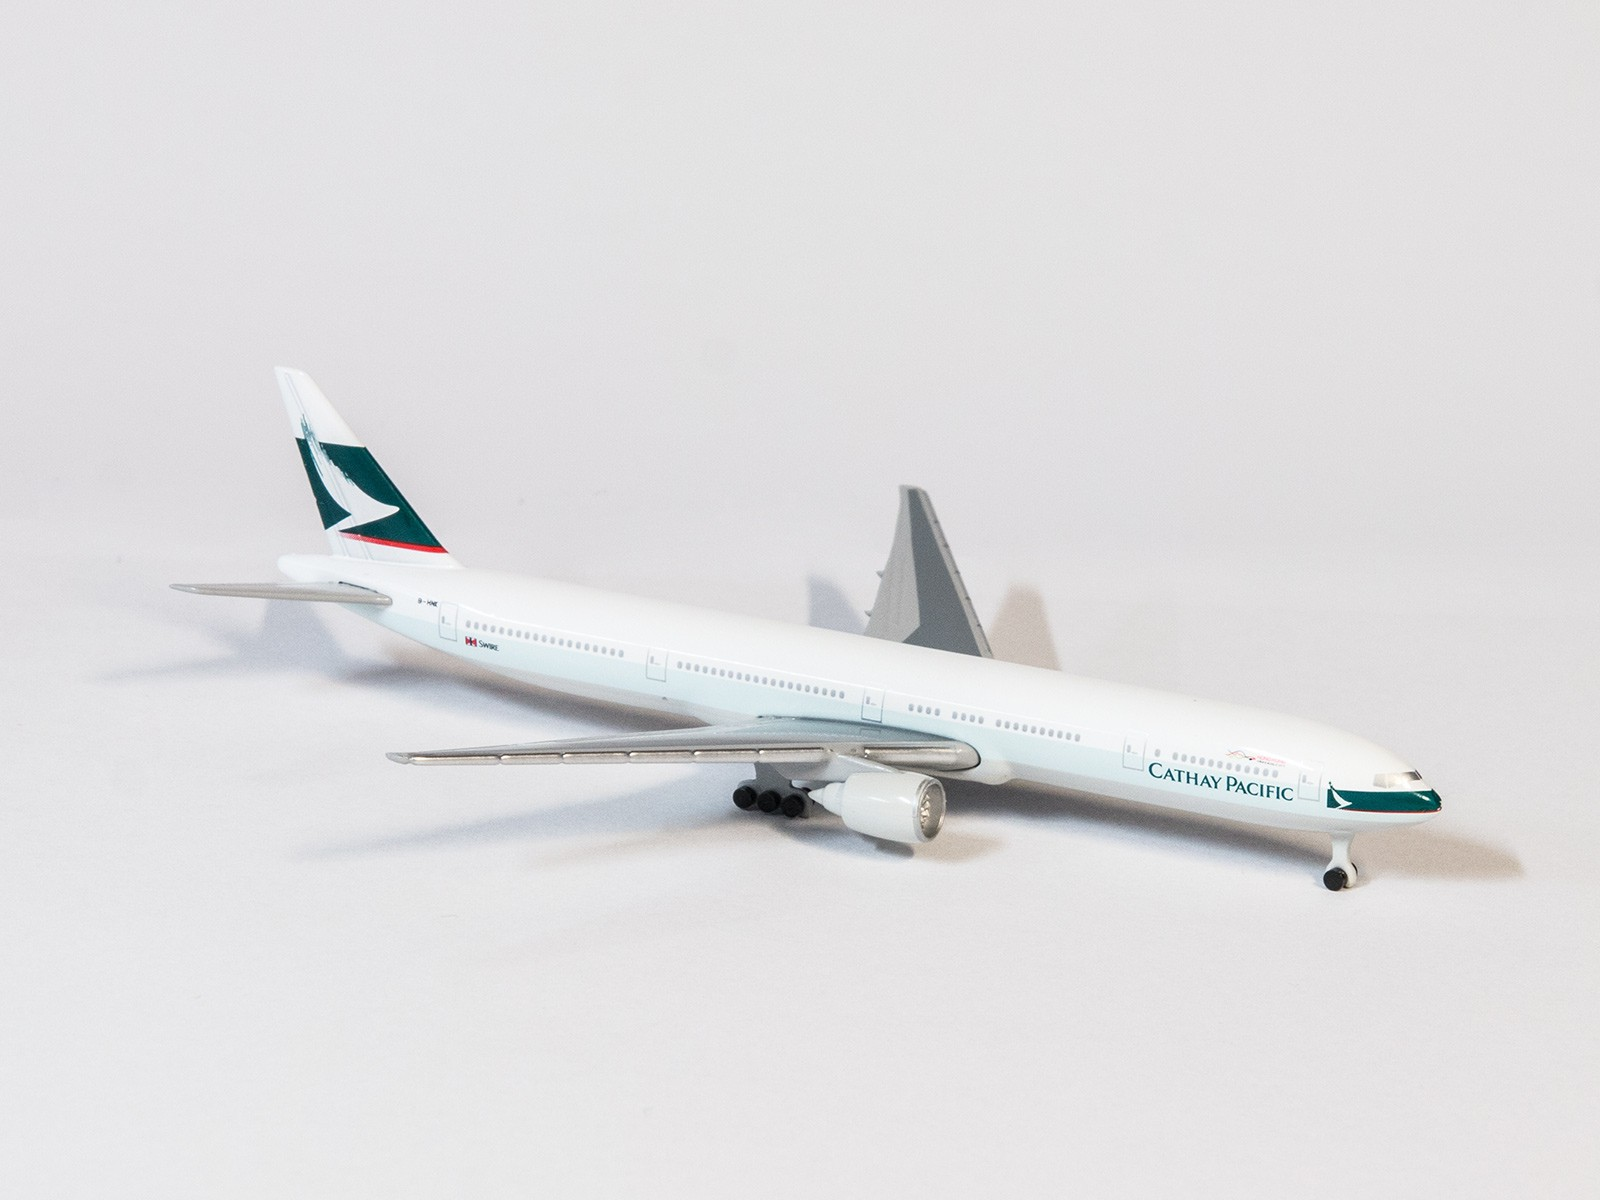 Schuco 31679 Boeing 777-300 Catay Pacific in 1:600